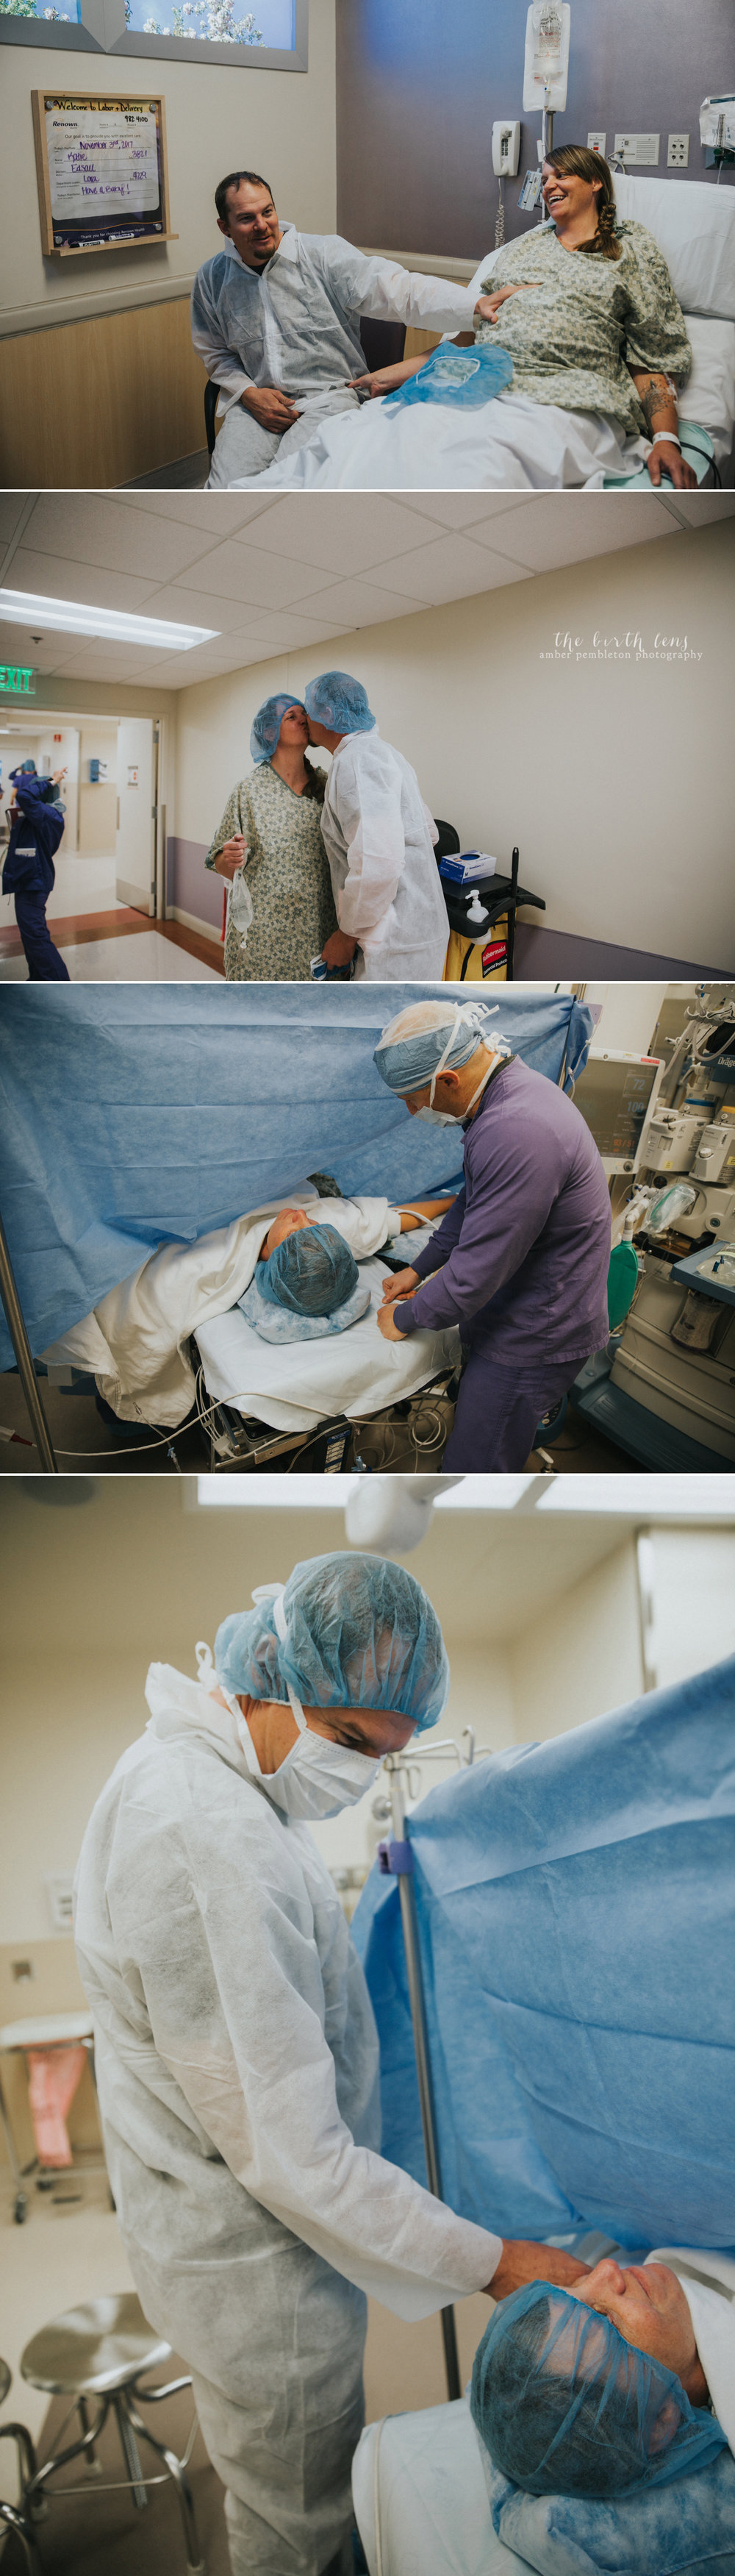 cesarean-birth-reno-nv.jpg